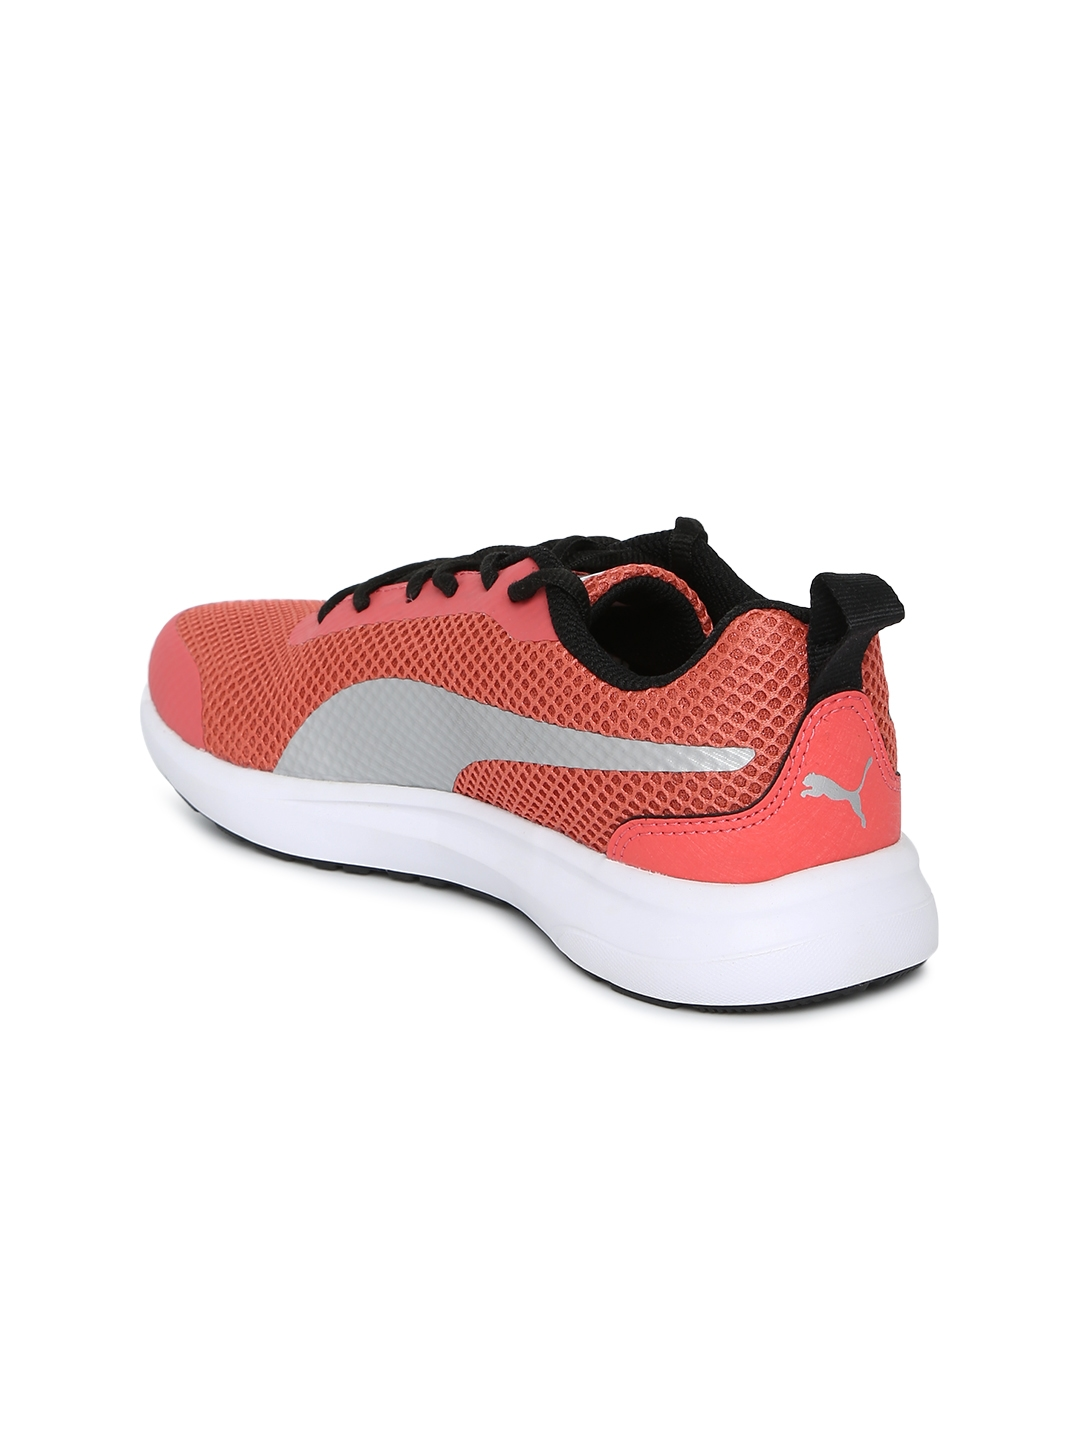 75a74da2dd96 Buy Puma Women Coral Pink Echelon V1 IDP Sneakers - Casual Shoes for ...